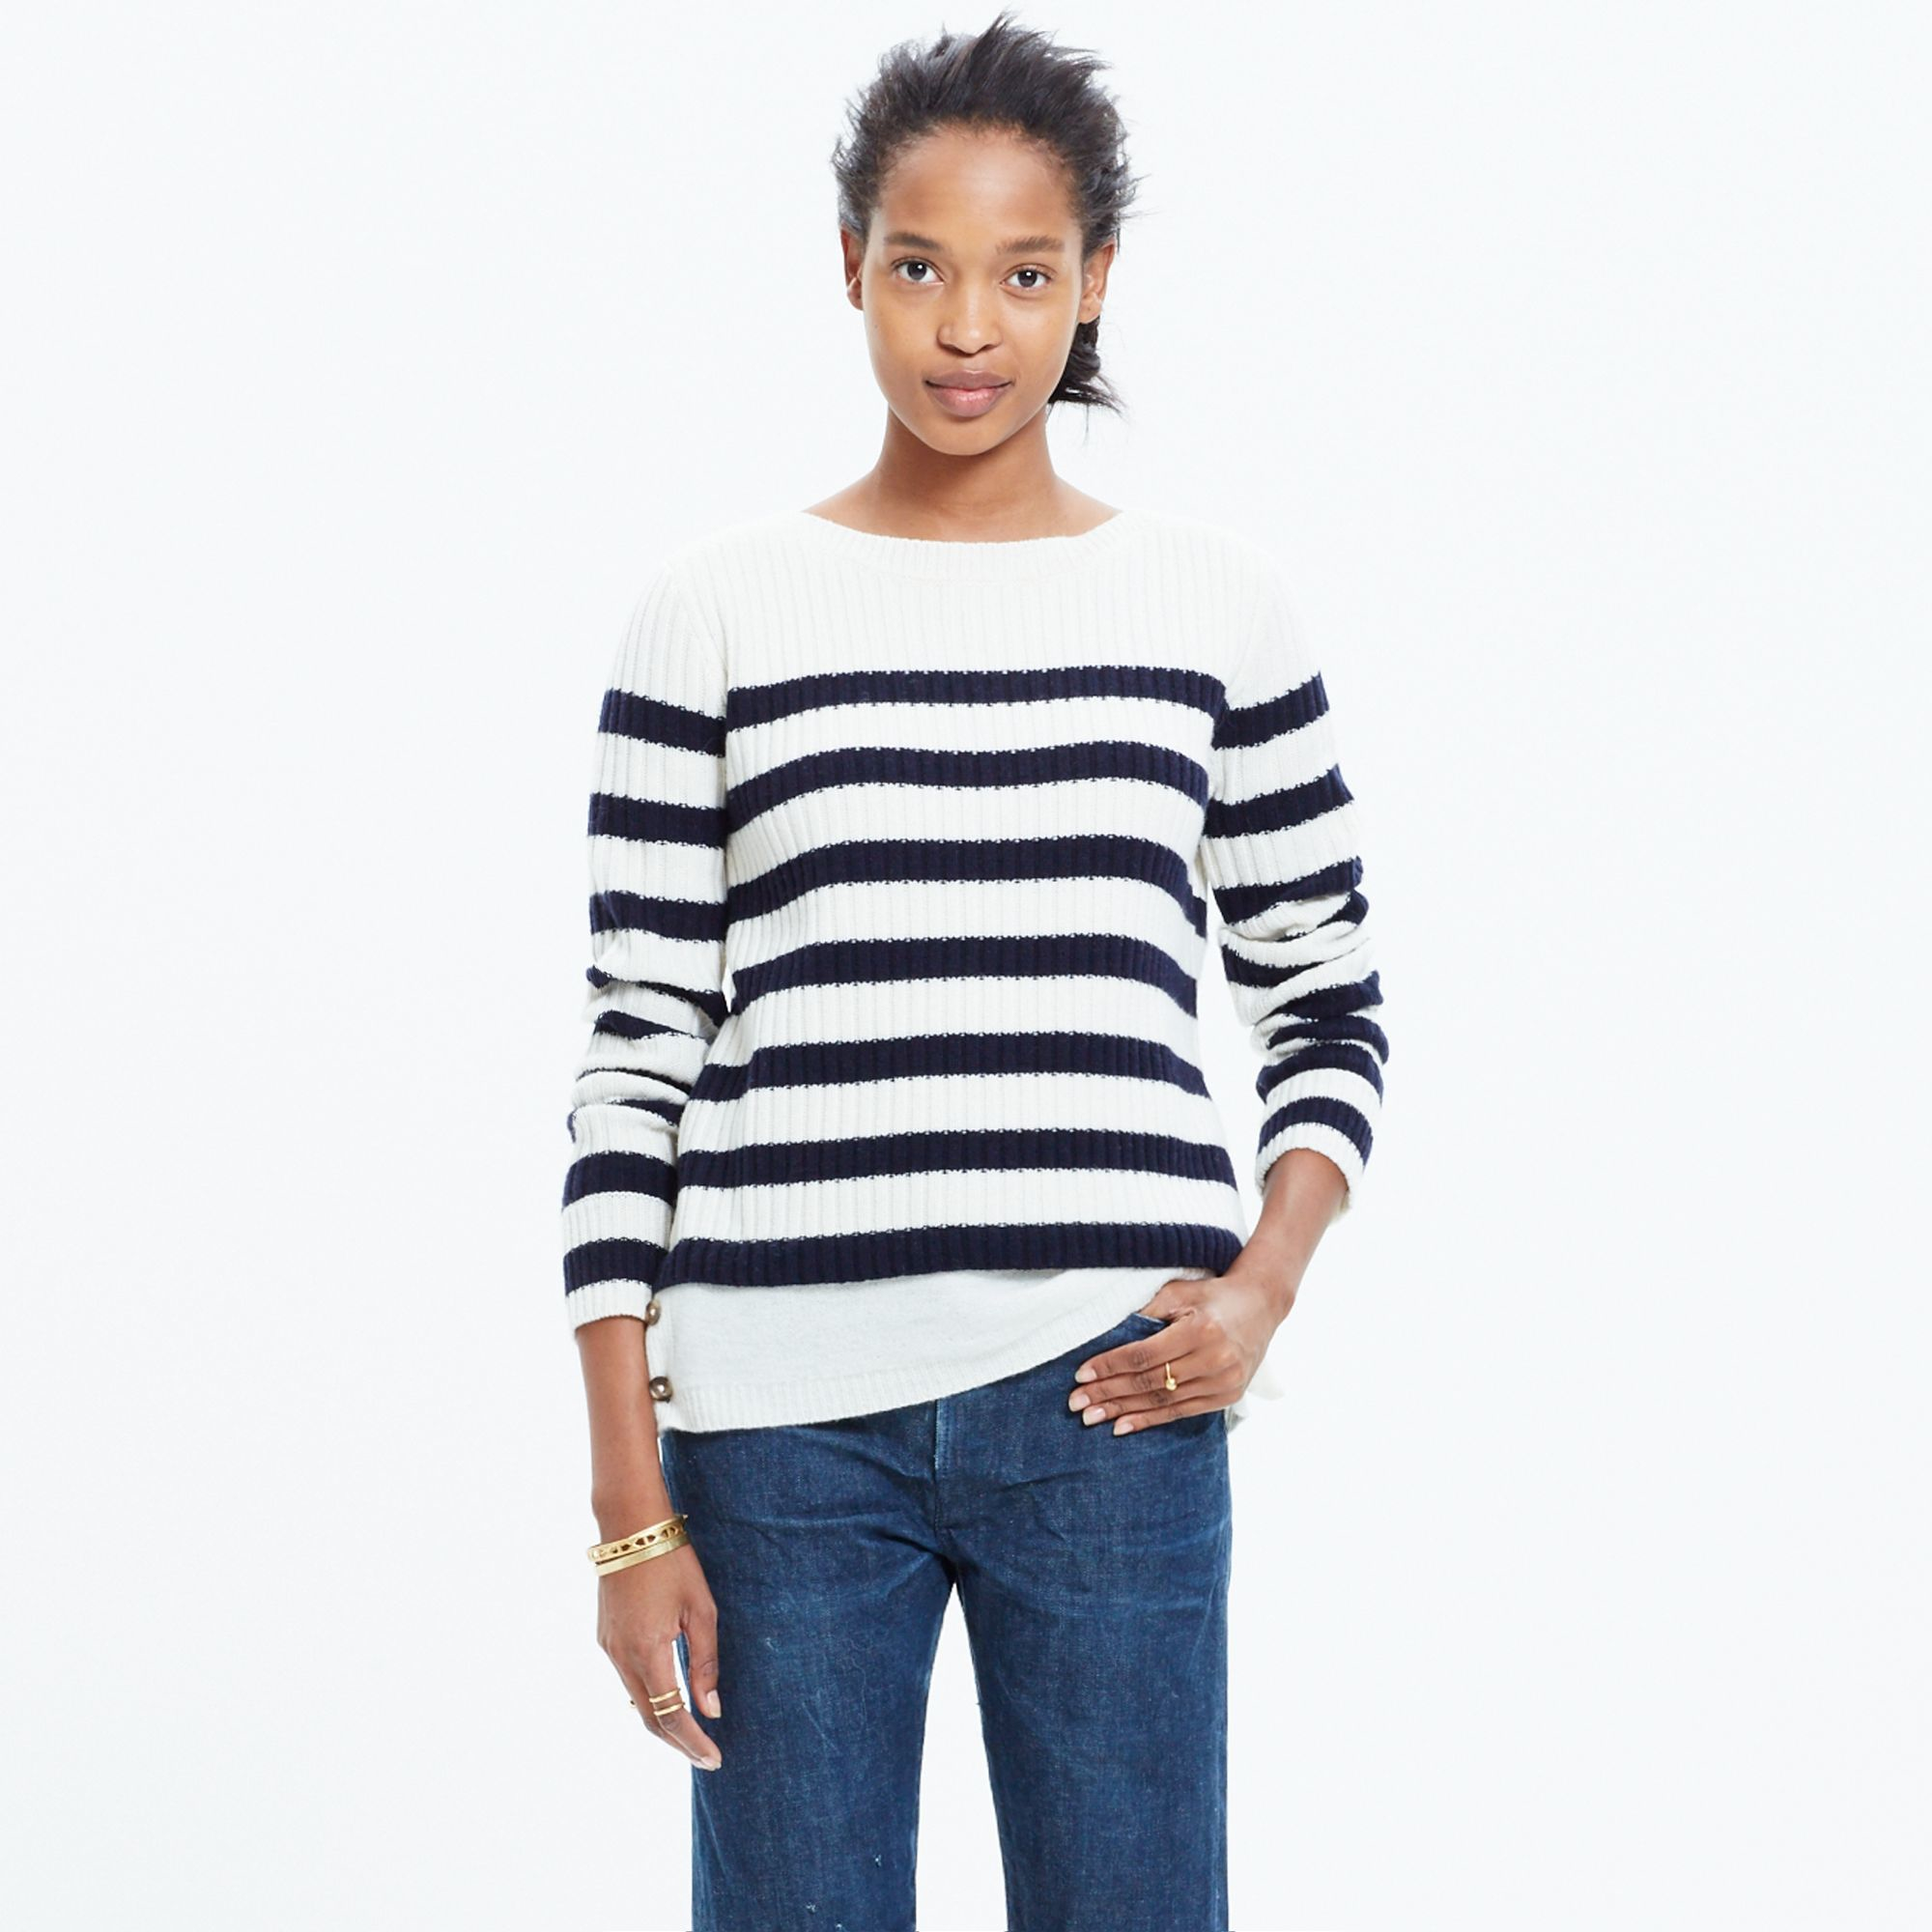 Snowflake Striped Sweater 120